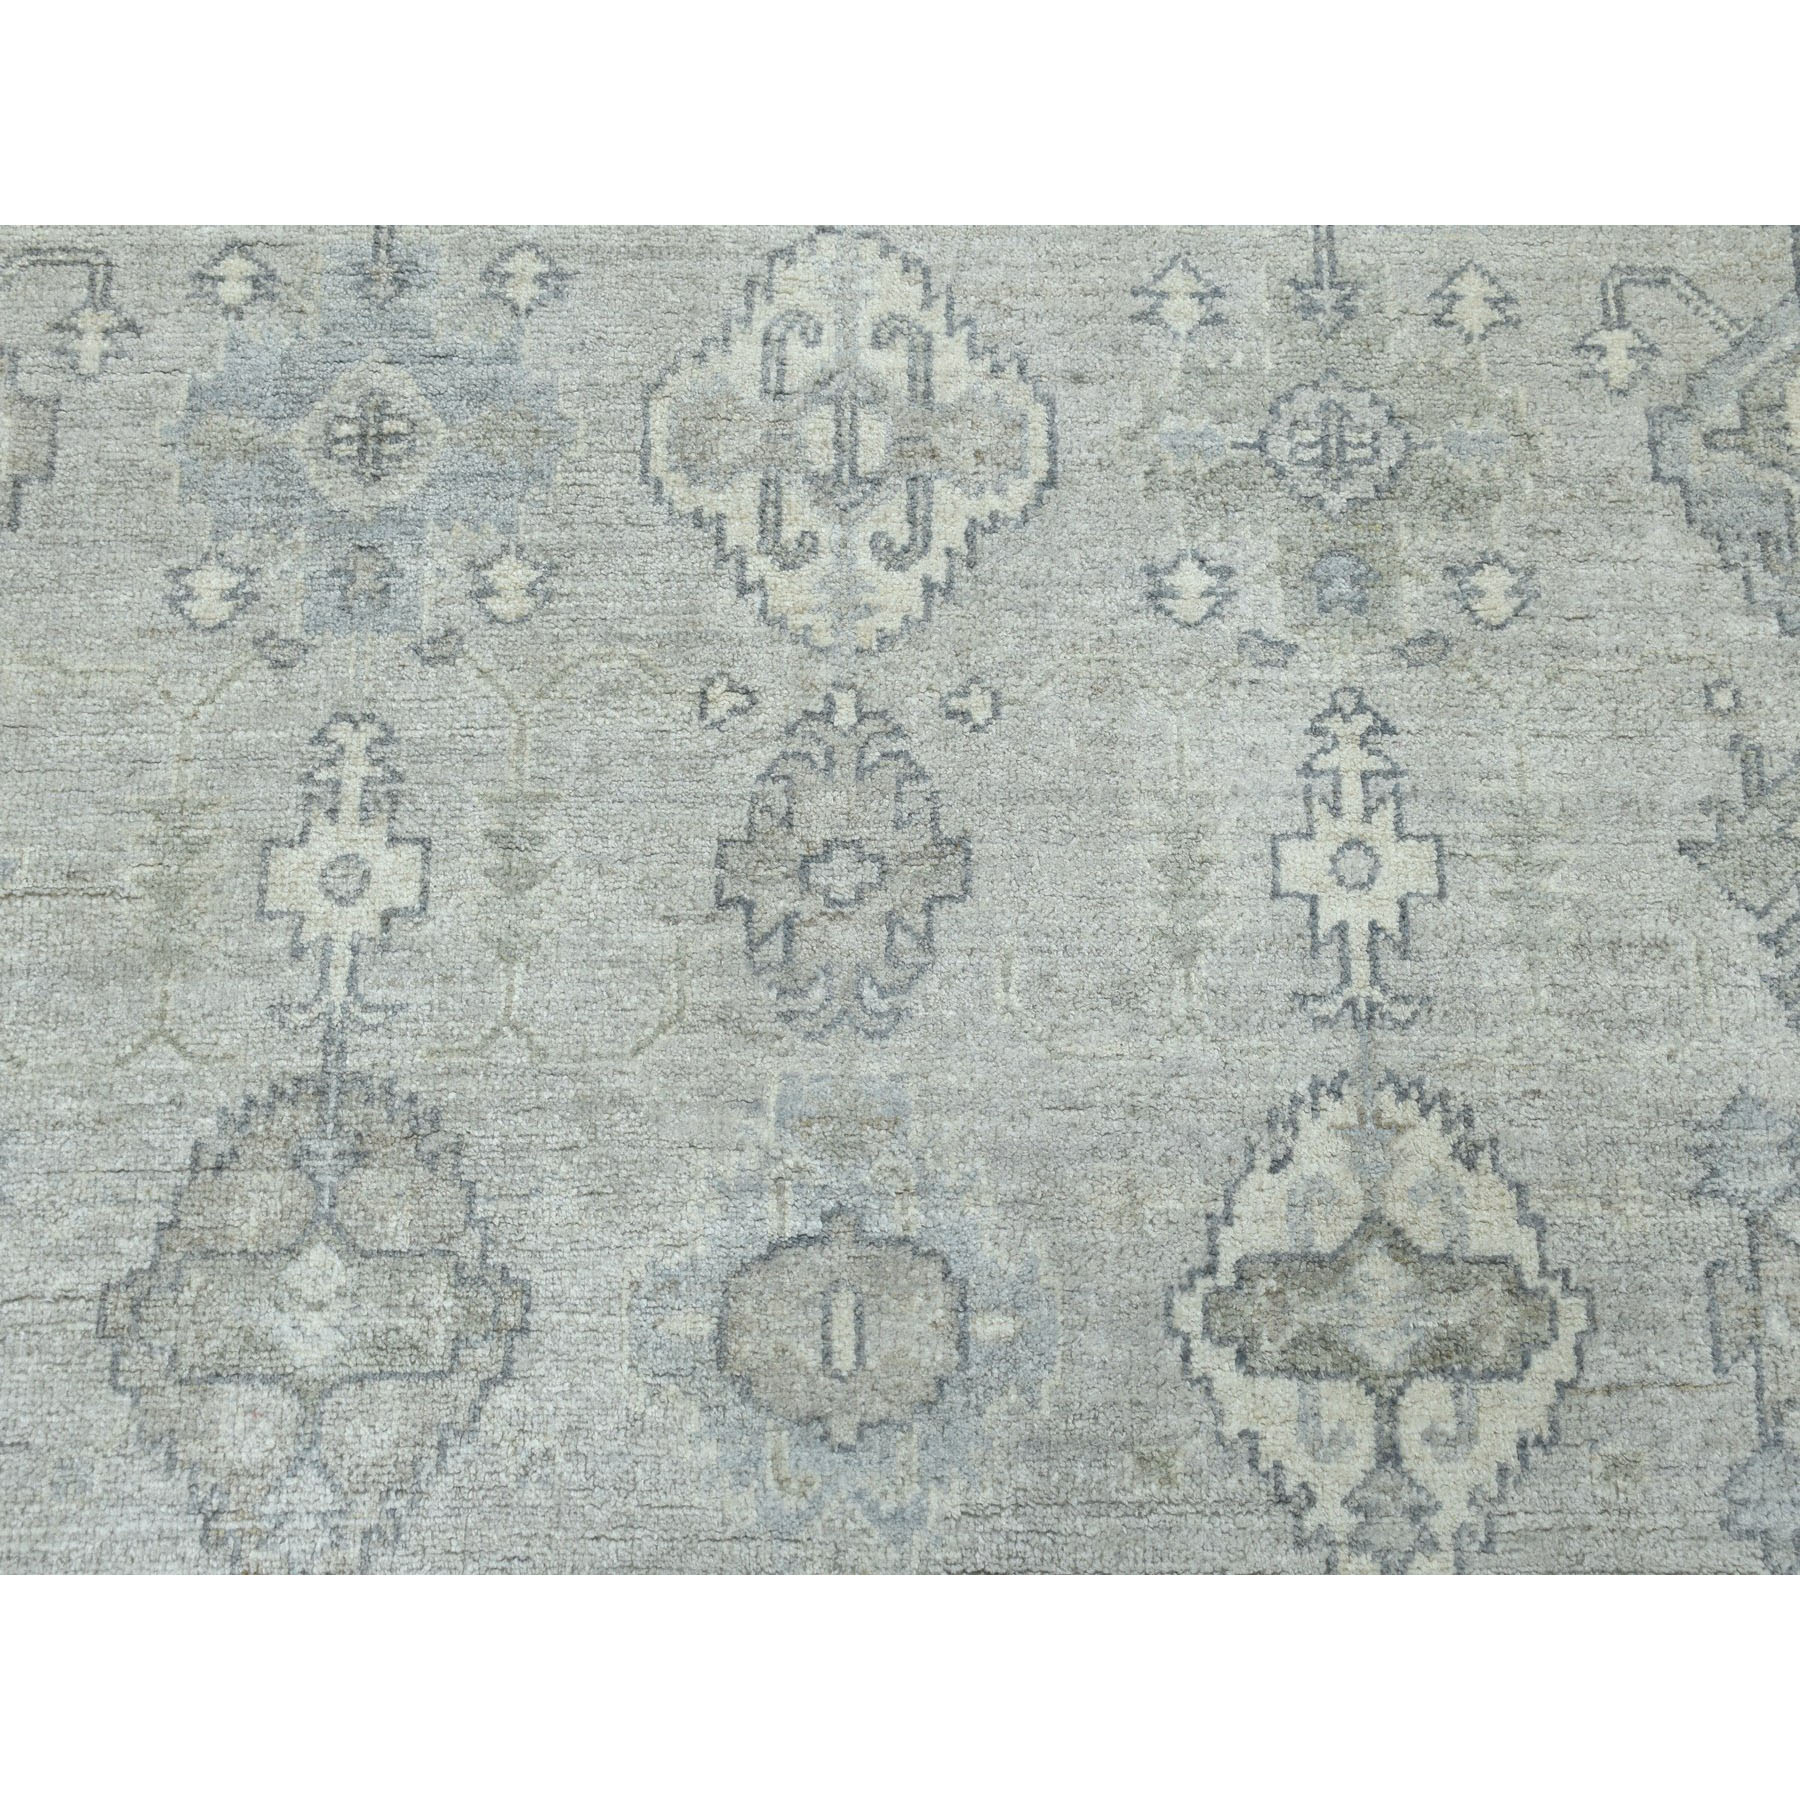 4-x5-10  Gray White Wash Peshawar With karajeh Design Pure Wool Hand-Knotted Oriental Rug